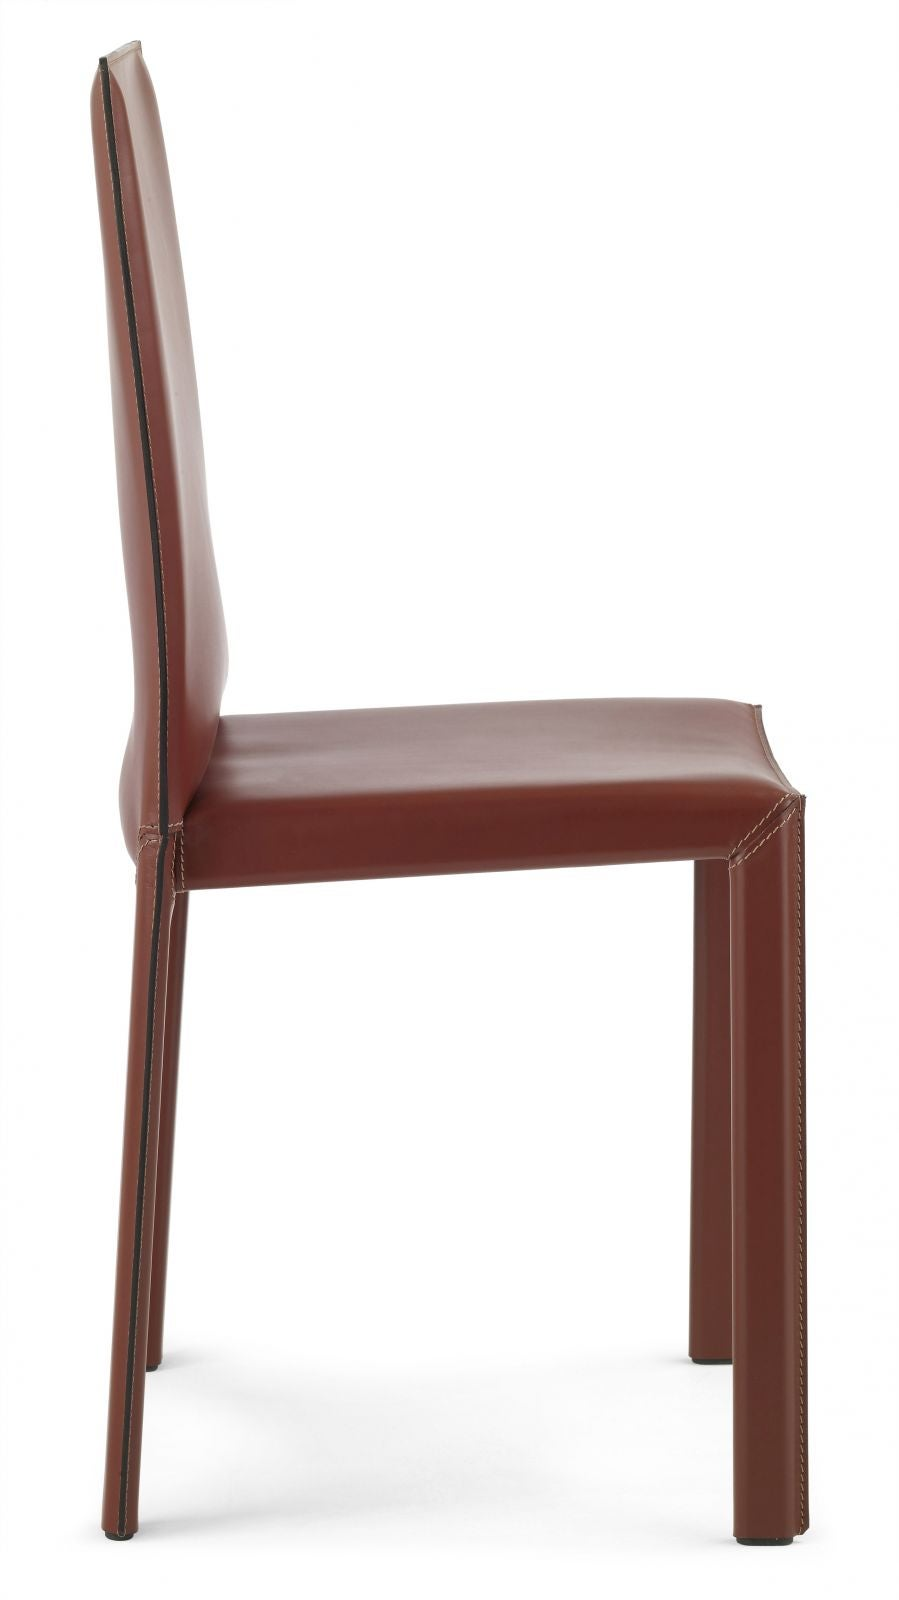 Italian Dining Leather Chairs with high back, made in Italy